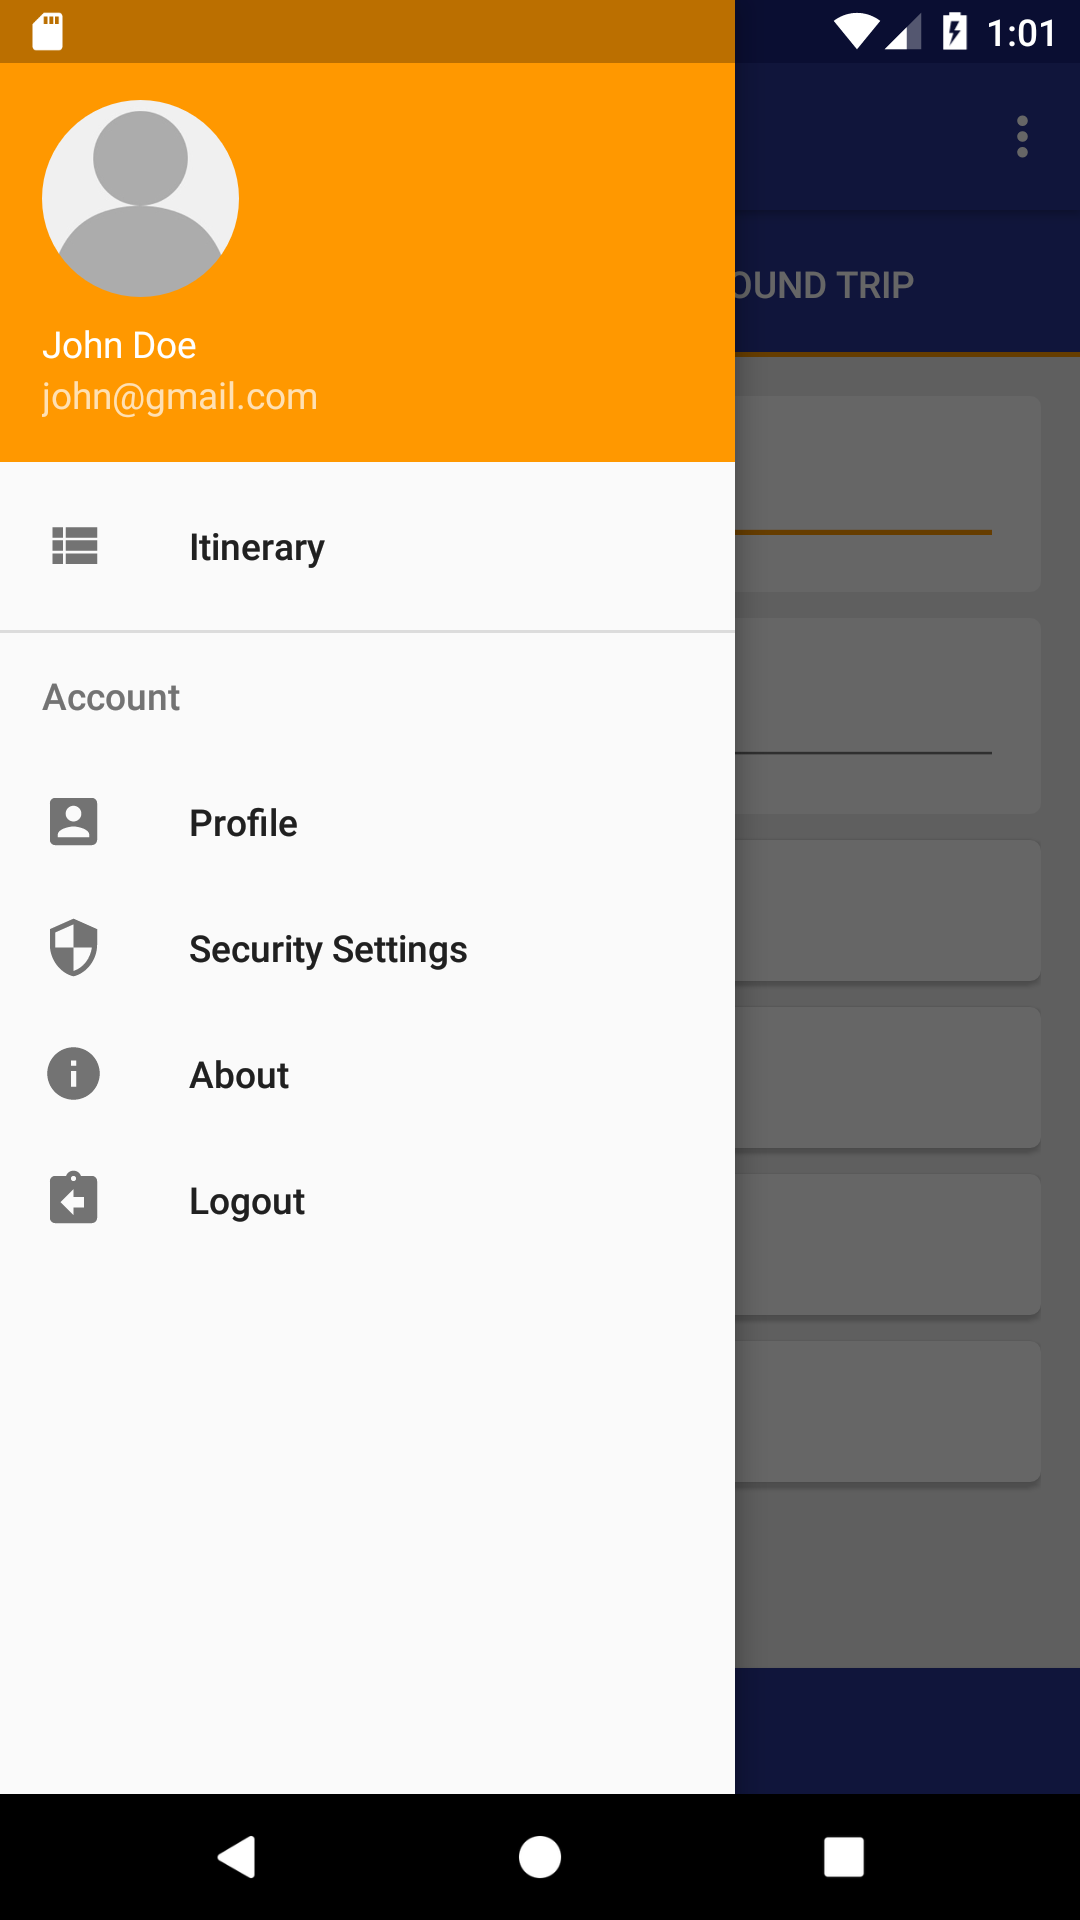 GitHub - mentesnot/Android-Flight-Reservation-App: Android mobile